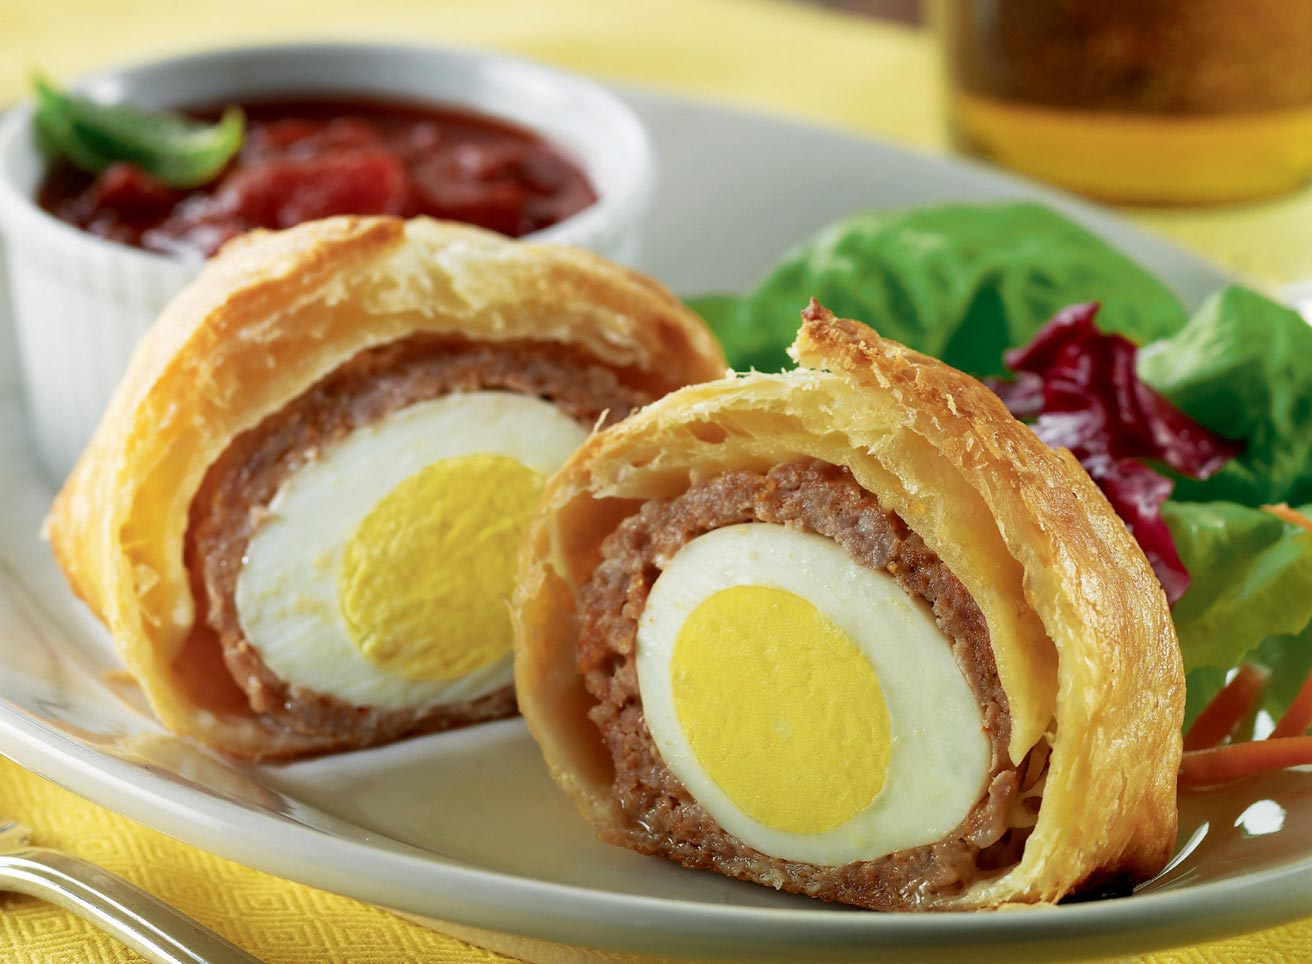 Sausage and Puff Pastry Wrapped Eggs